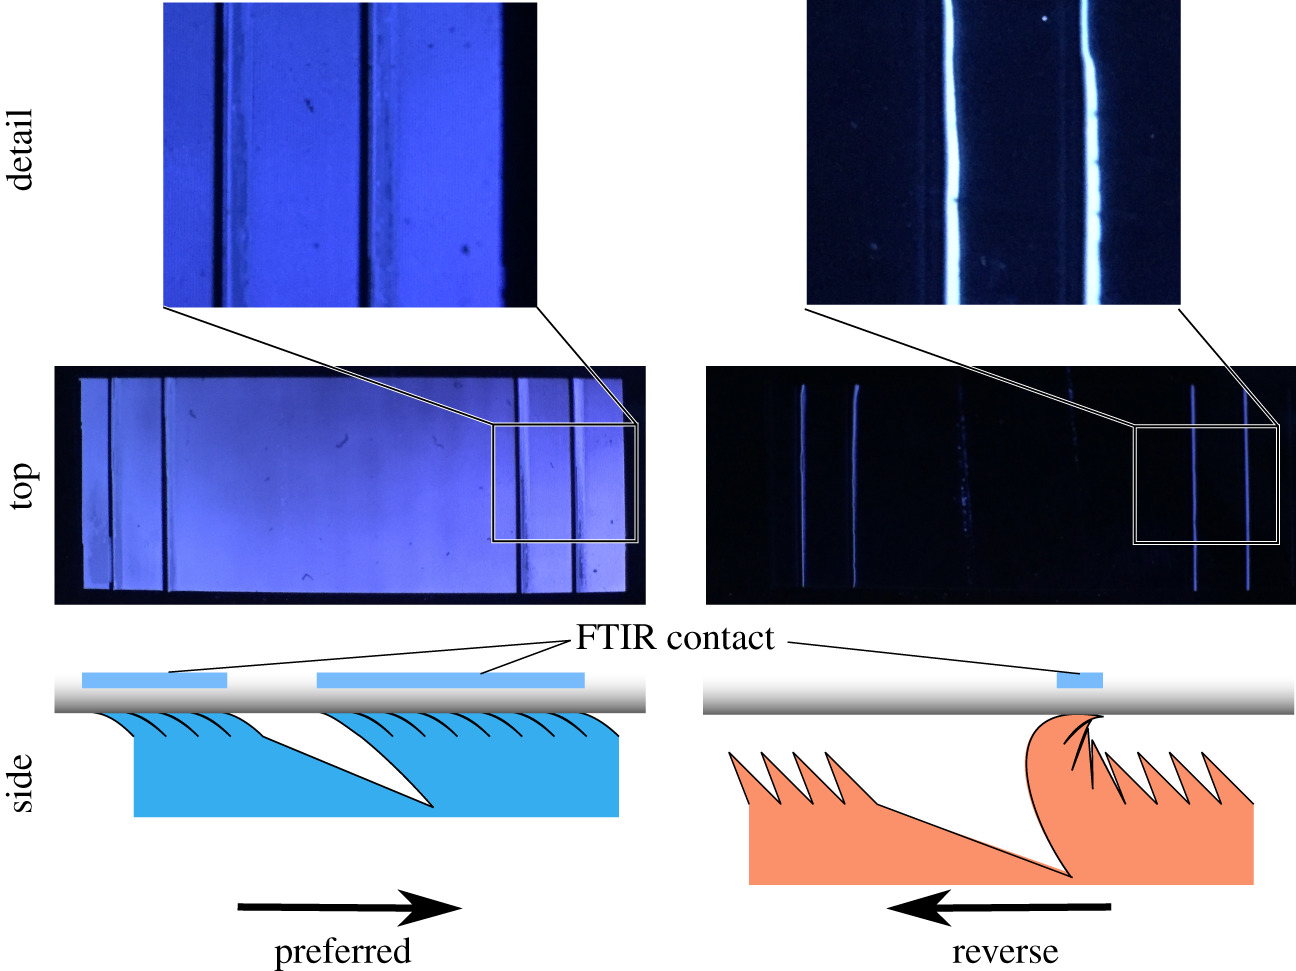 Spatially variant microstructured adhesive with one-way friction